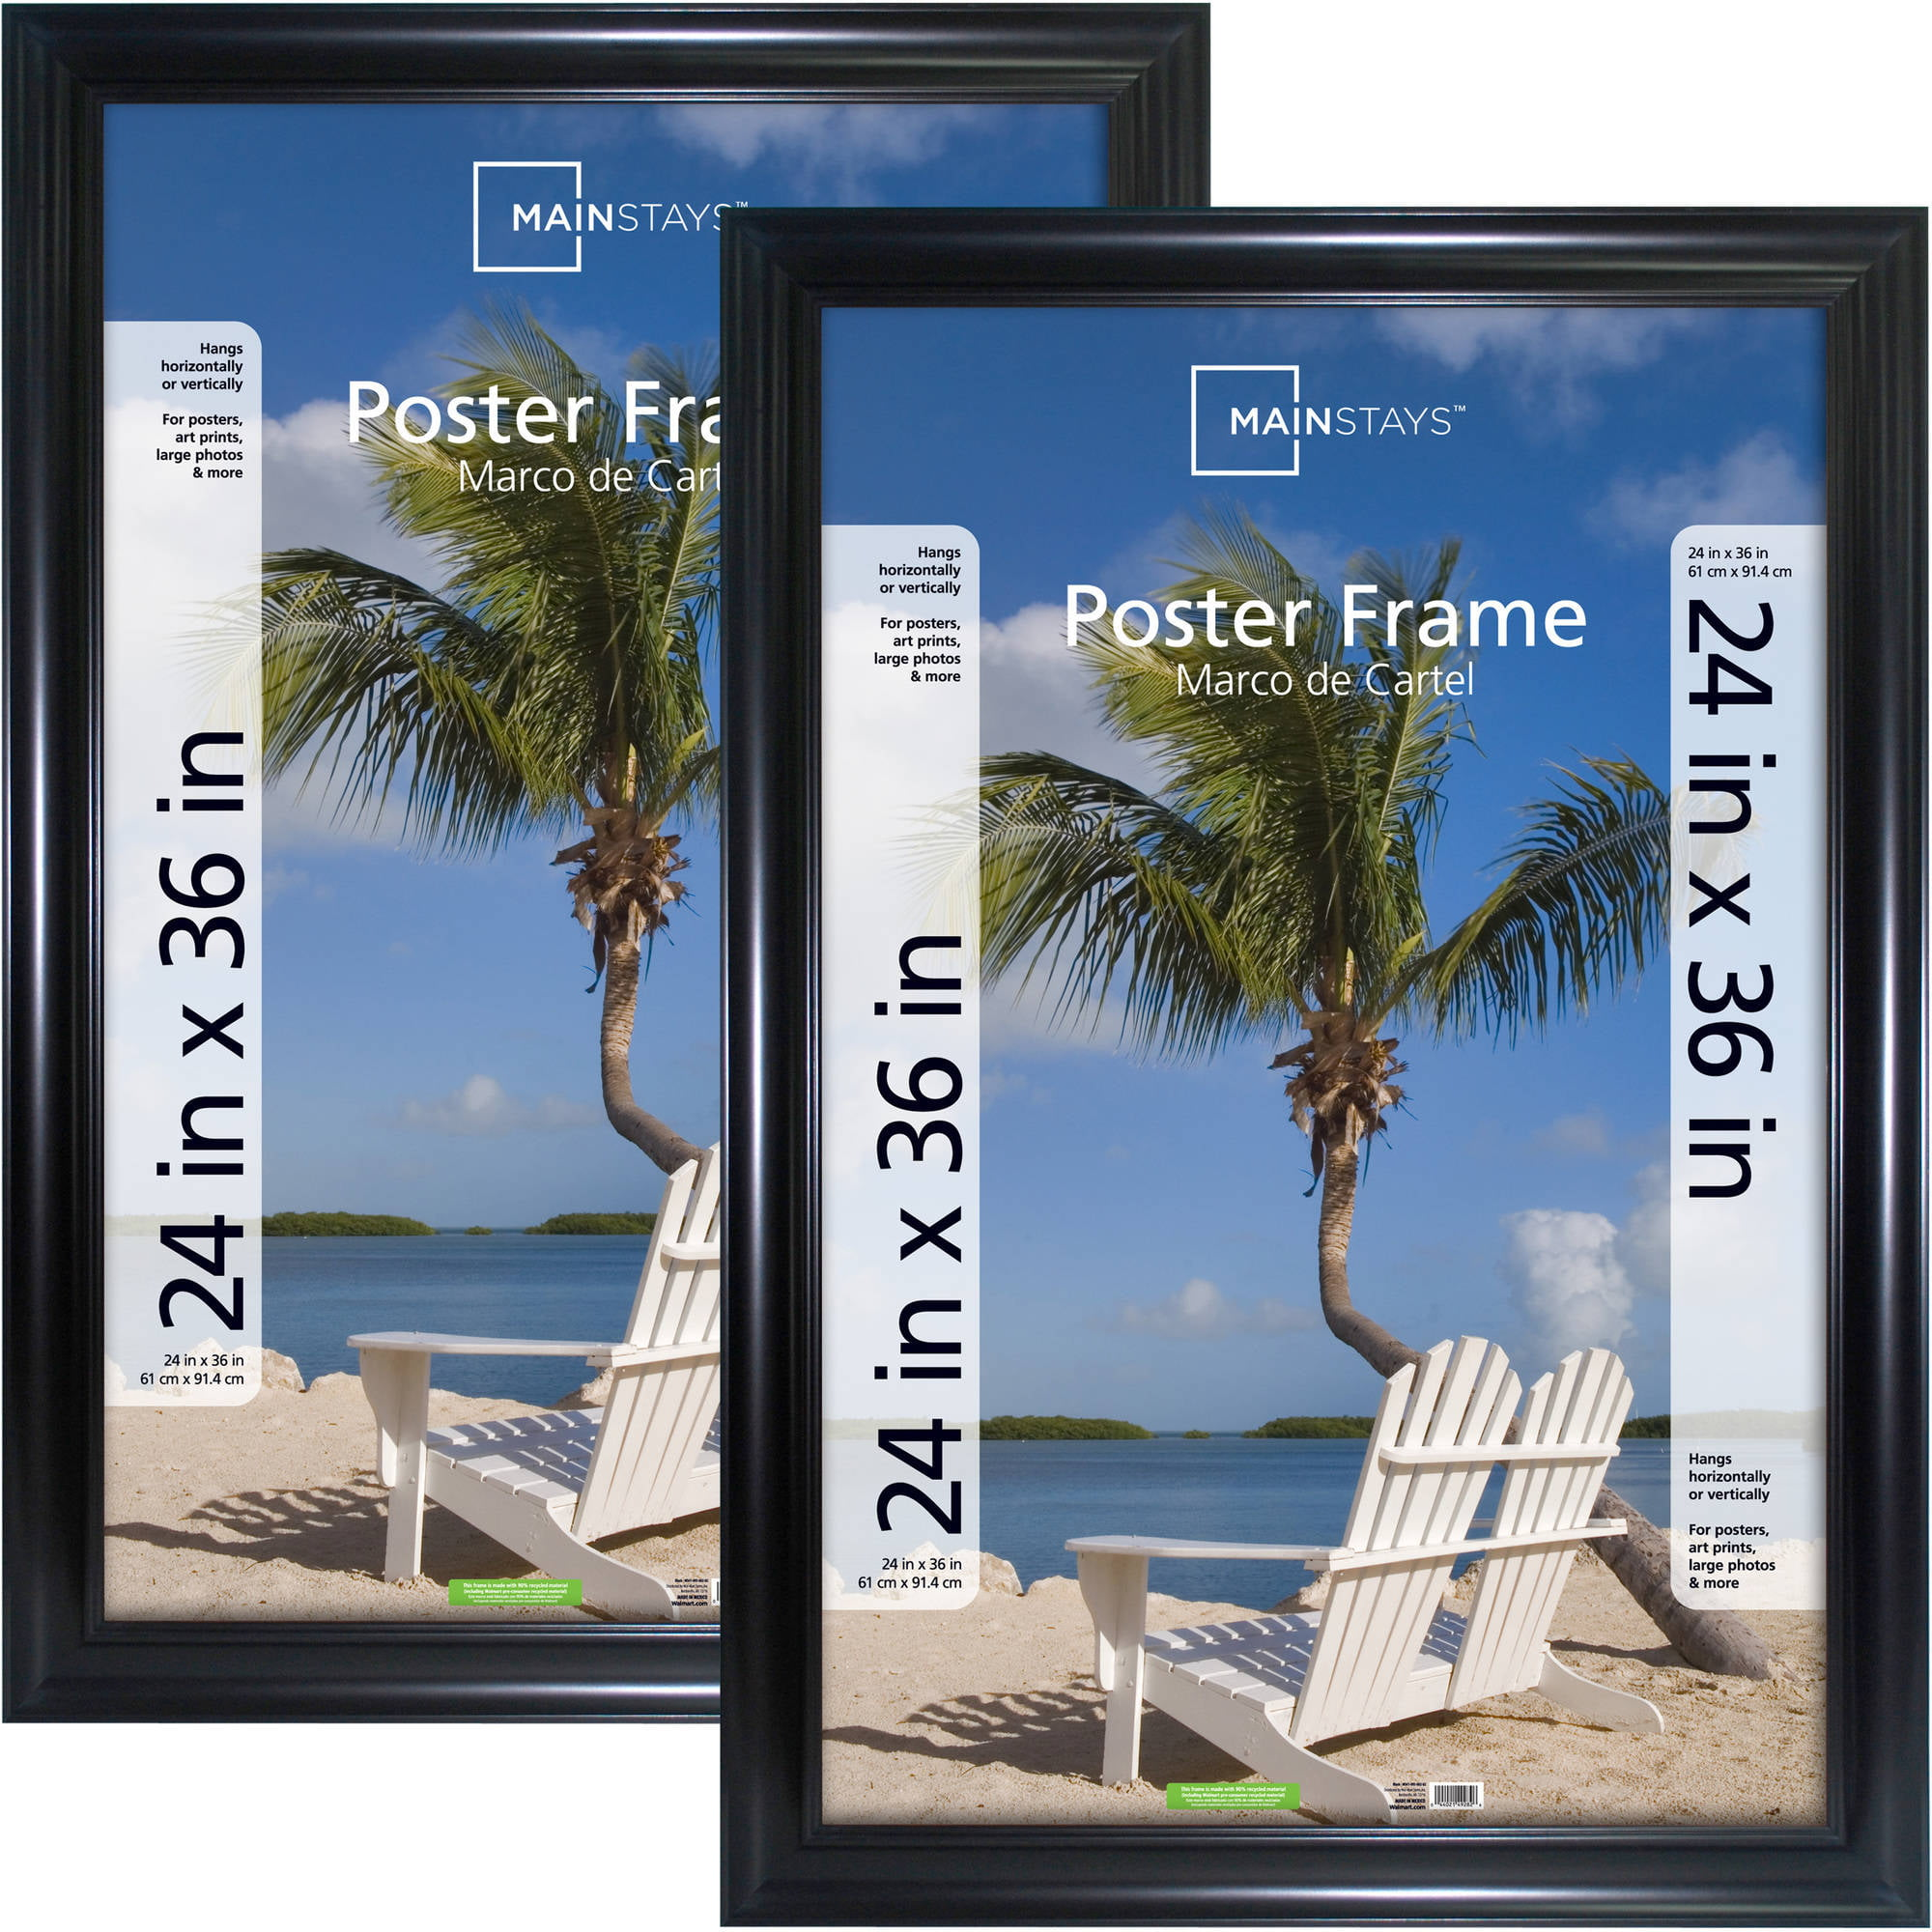 Mainstays 24x36 Wide Black Poster and Picture Frame, Set of 2 by MCS Industries, Inc.